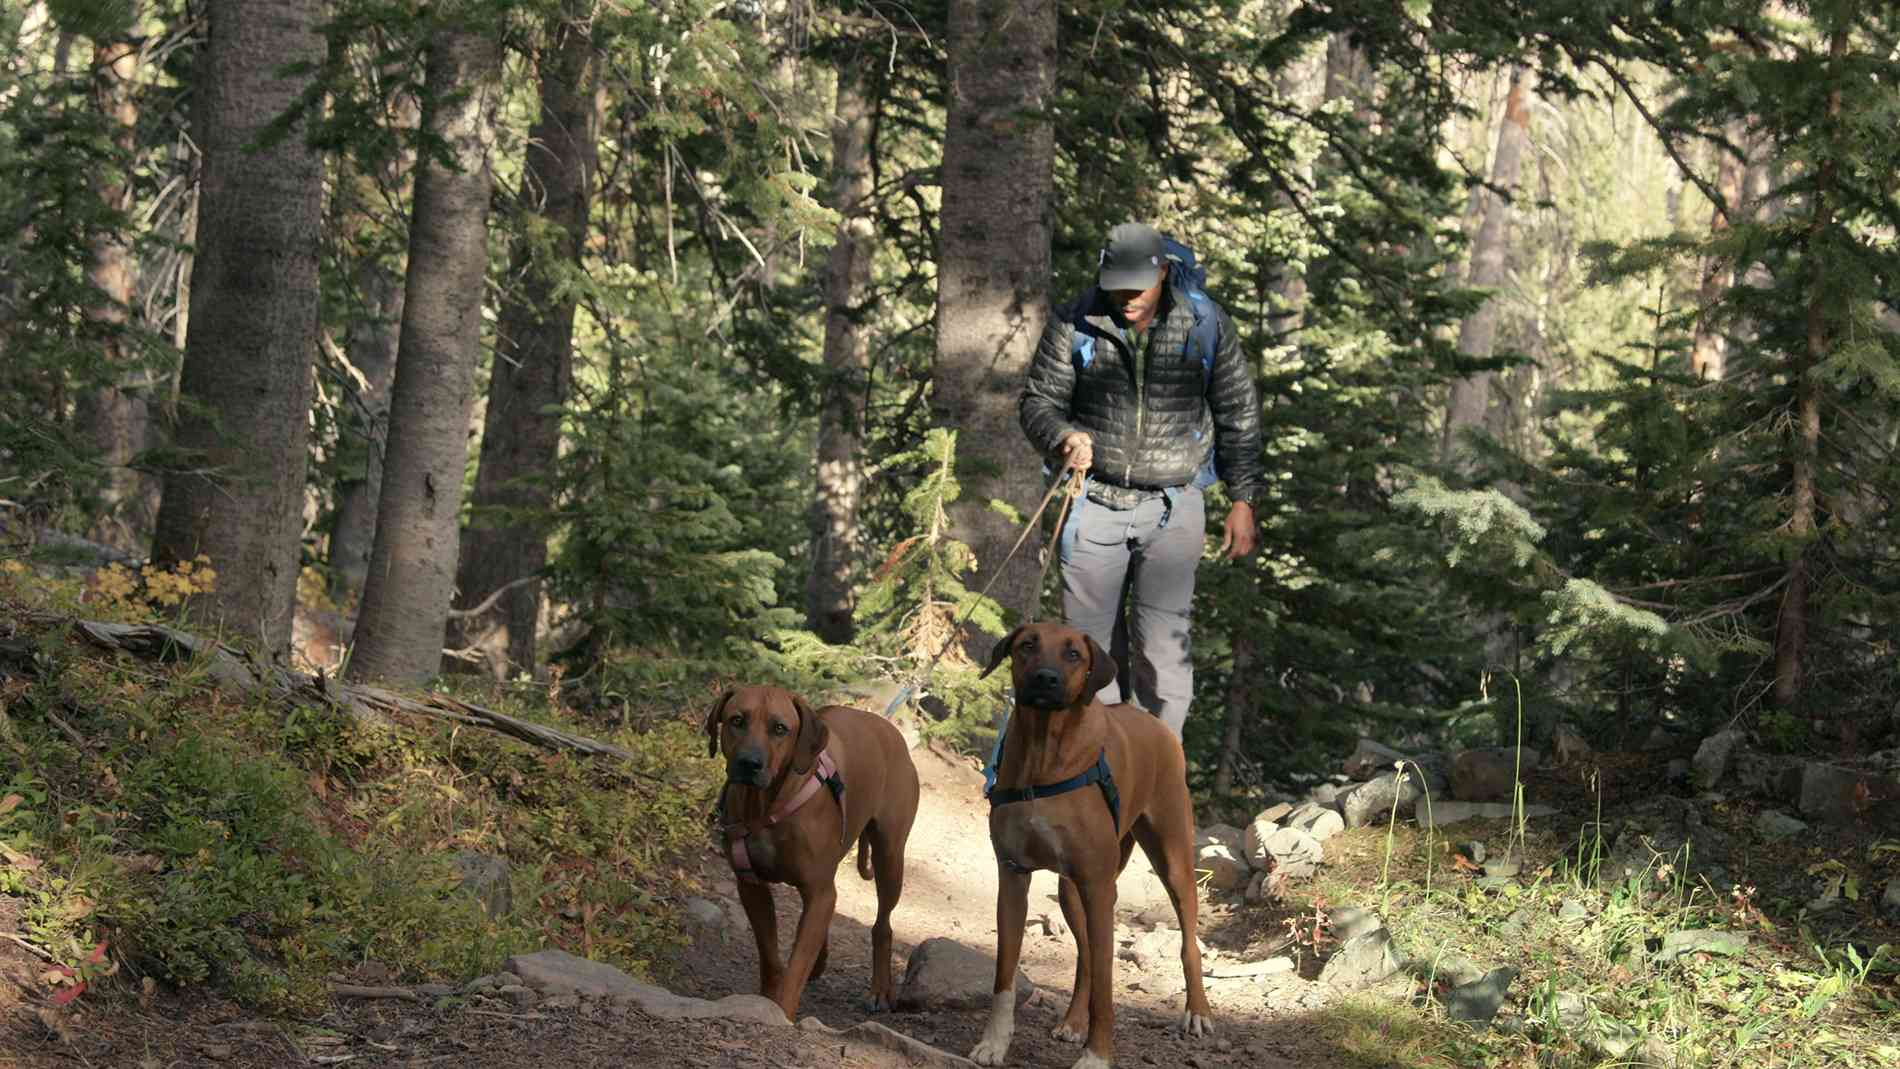 Leland Melvin hiking in Colorado with Zorro and Roux